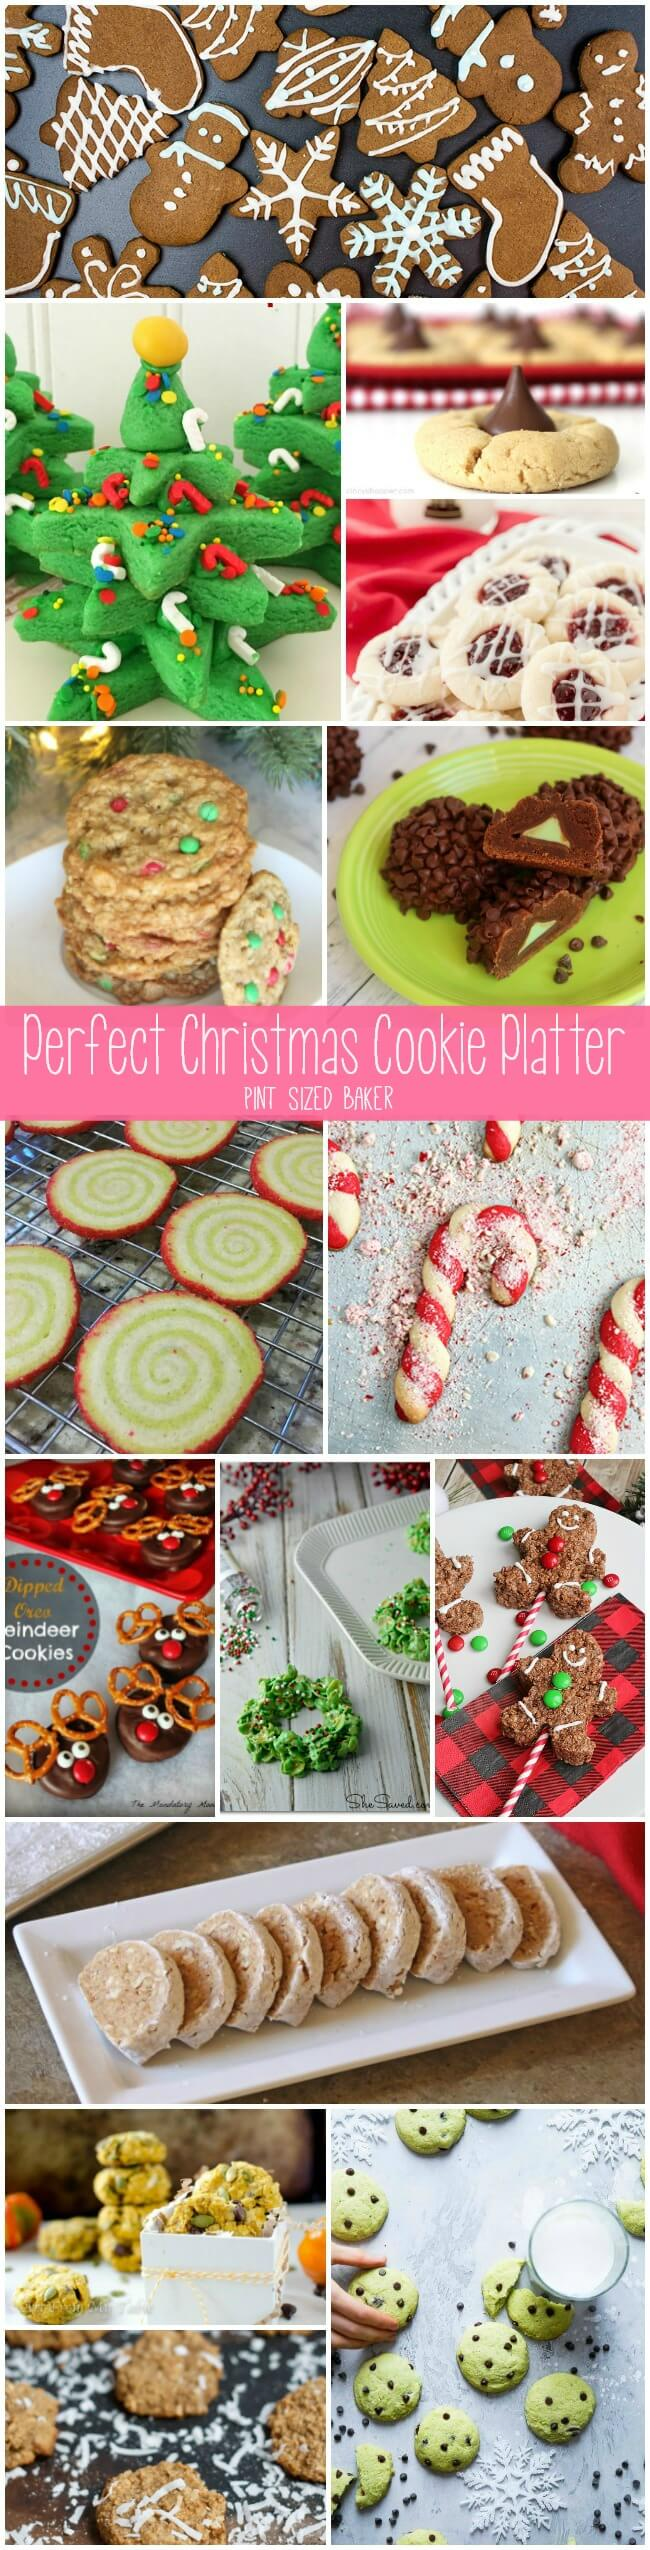 Here's 15 cookie recipes that will make up The Perfect Christmas Cookie Platter to give out this holiday season. The neighbors are gonna love ya!